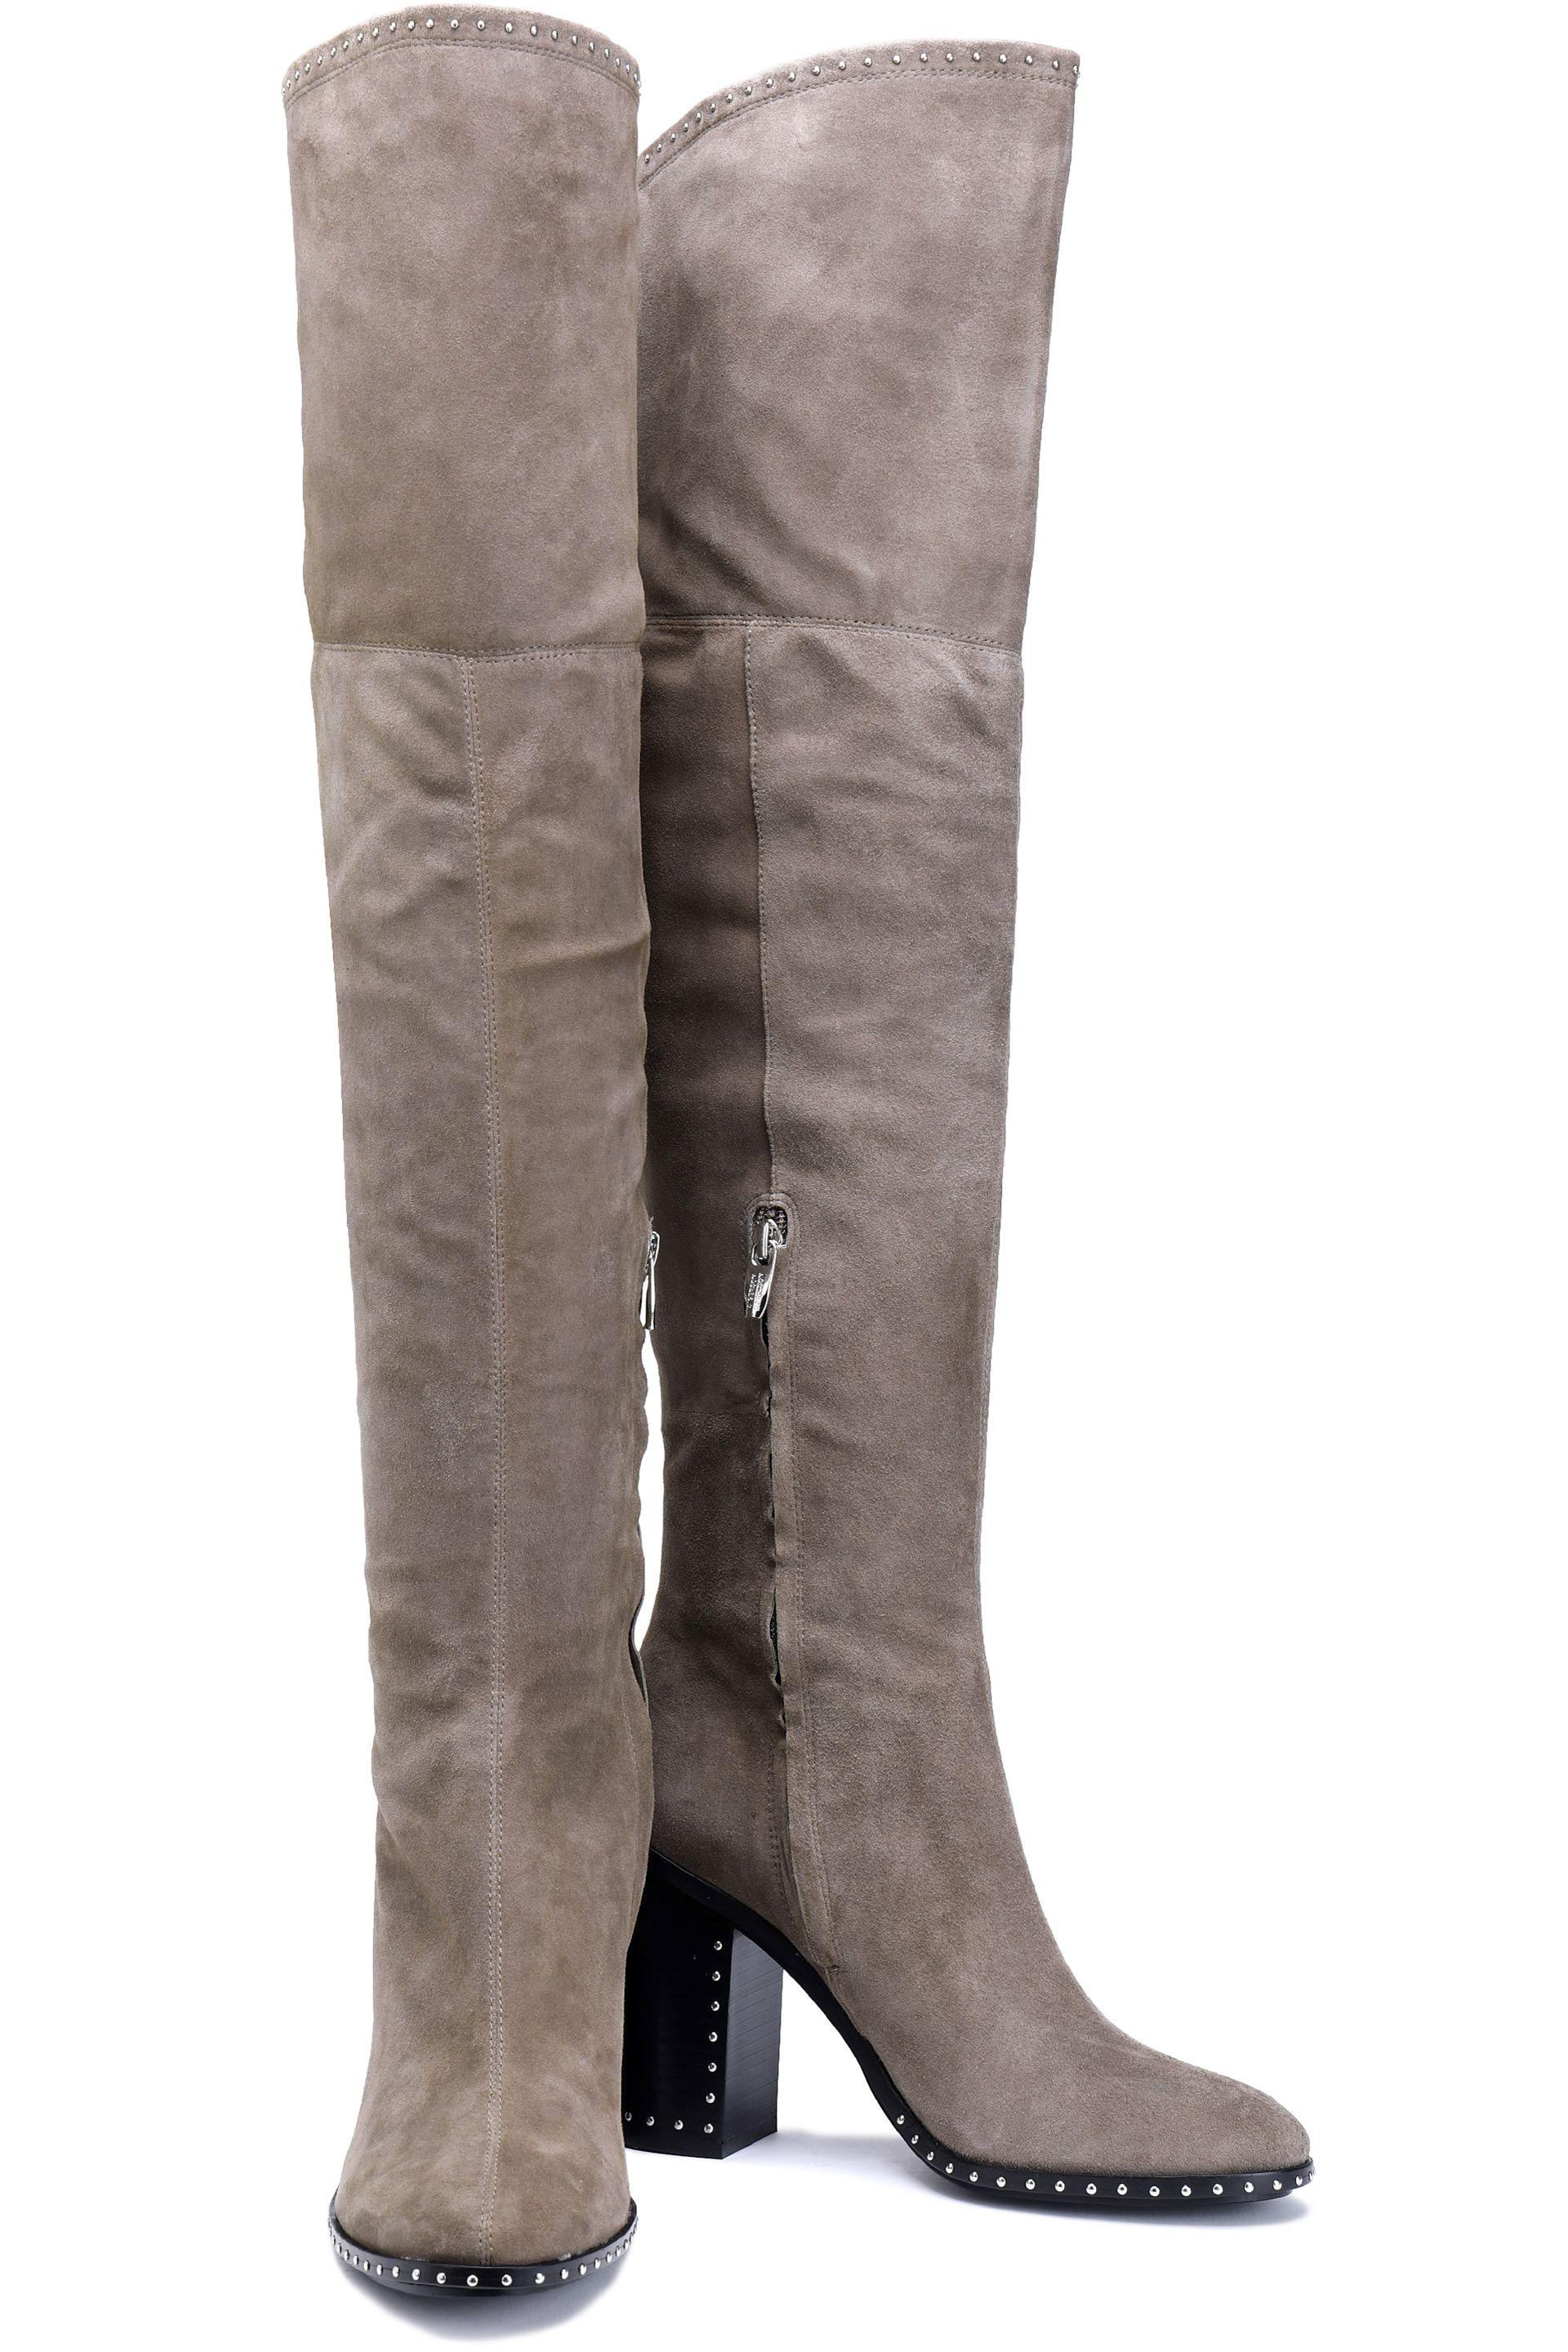 42823fcd45c Sigerson Morrison - Multicolor Woman Mars Studded Thigh Boots Taupe - Lyst.  View fullscreen